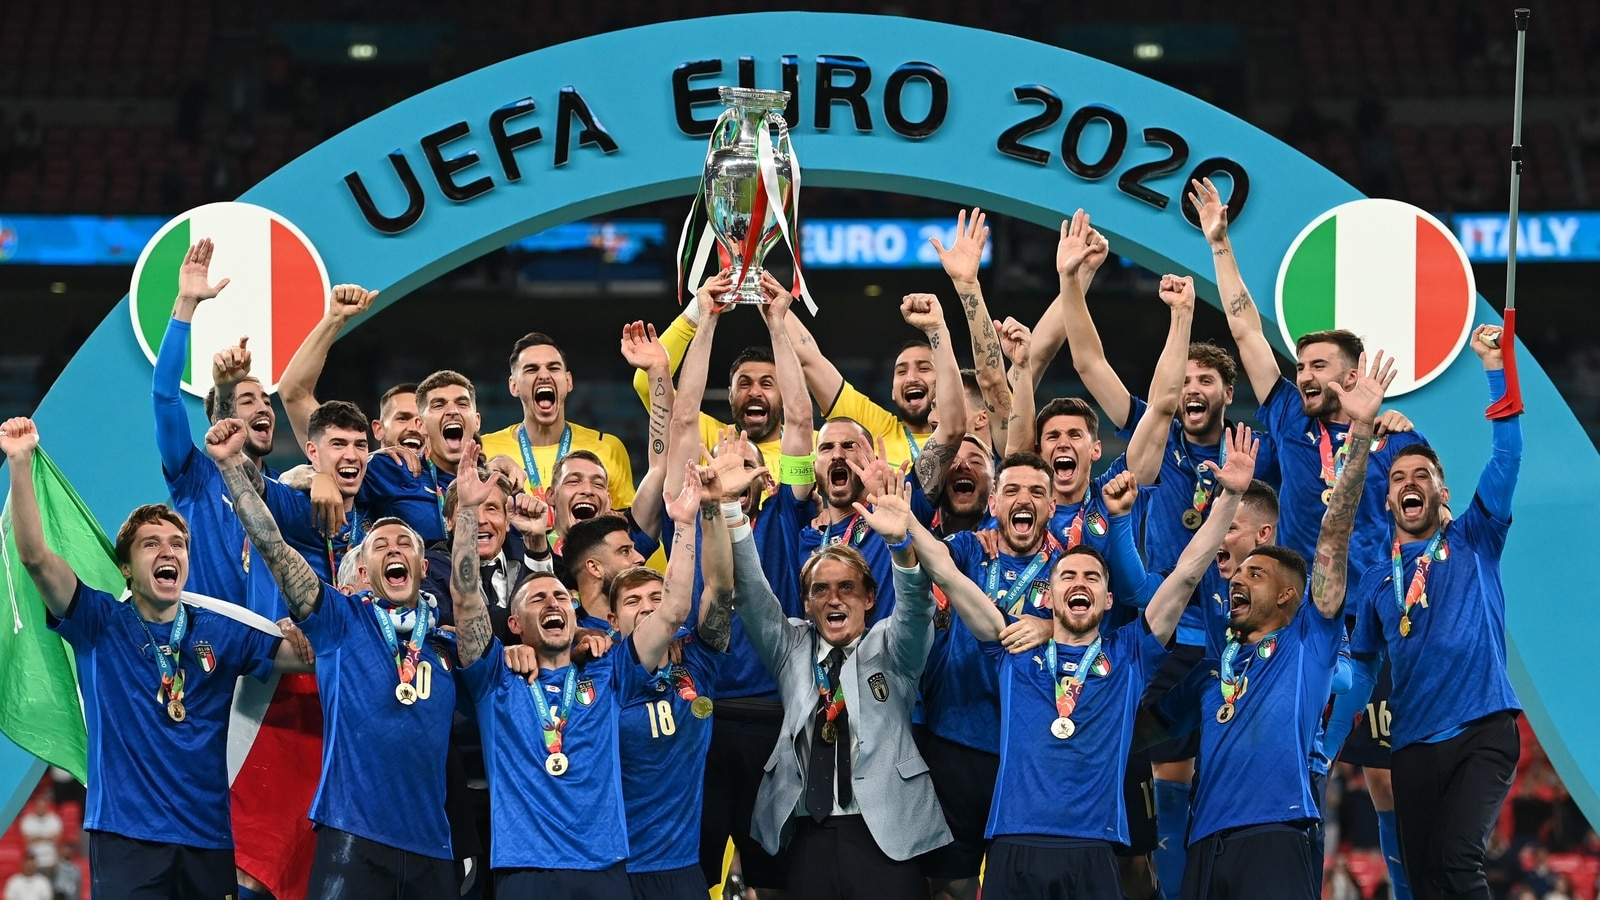 Italy beat England 3-2 on penalties in final to win their  2nd European Championship title   Football News - Hindustan Times